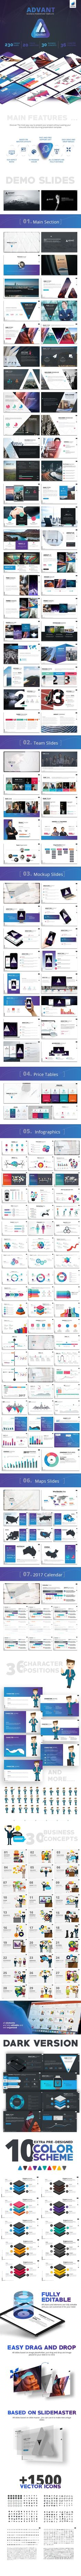 Advant Business PowerPoint Template - Business PowerPoint Templates